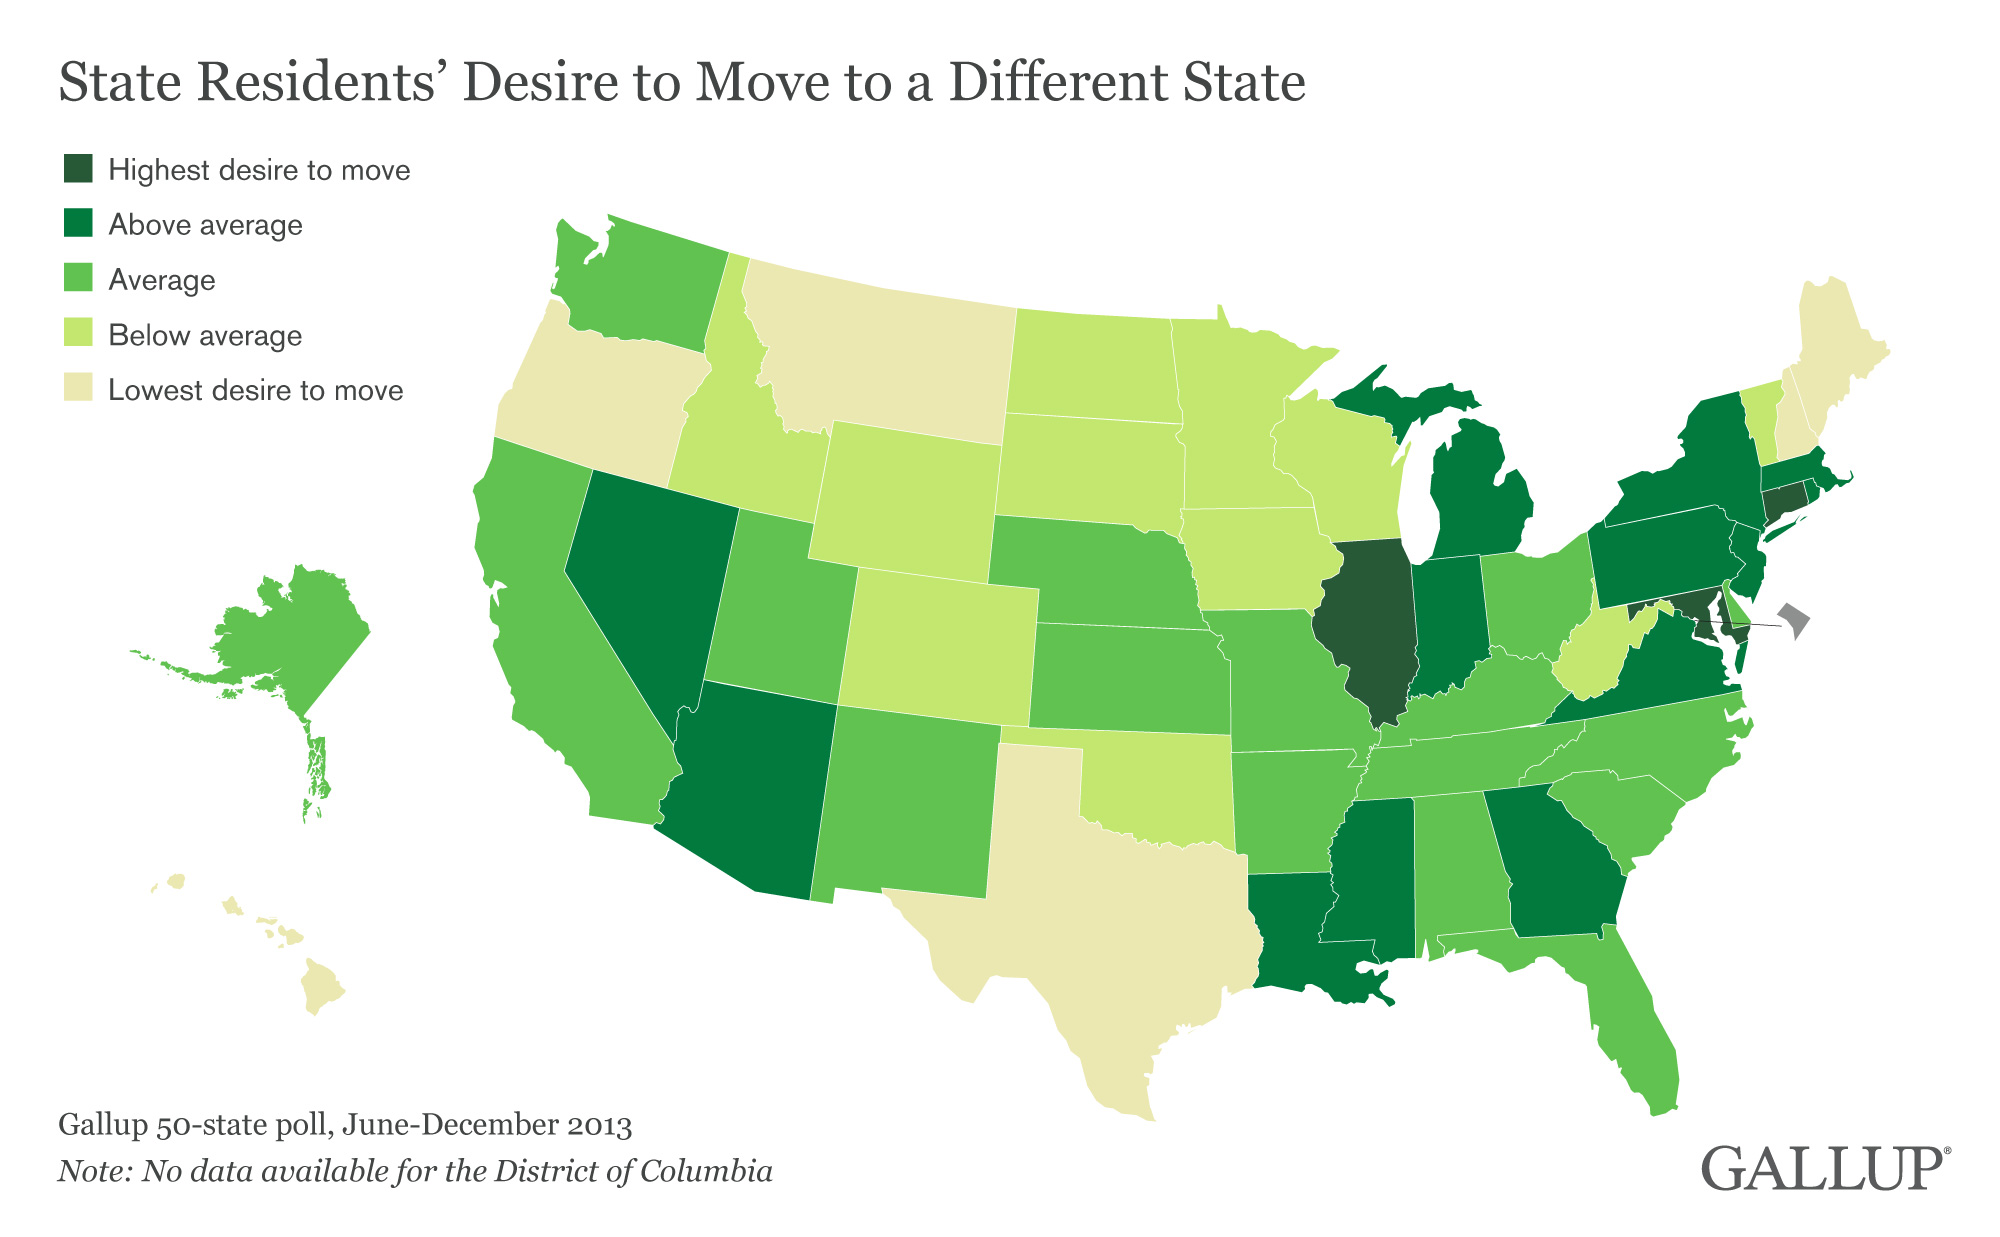 2014-04-29_State_Residents_Desire_Move.j